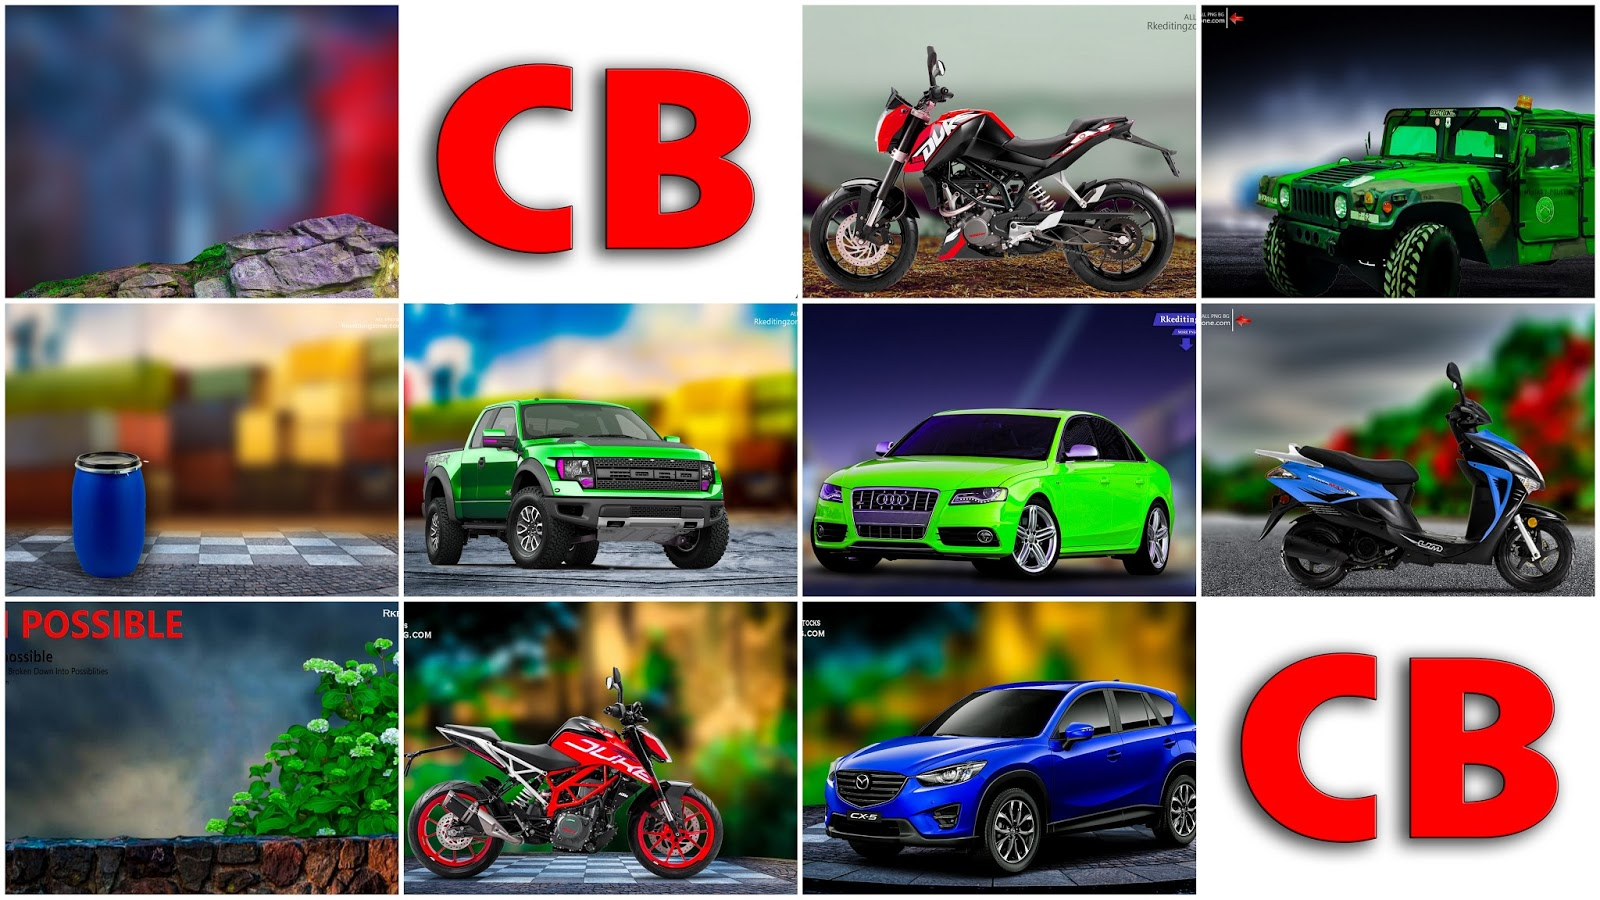 2018 ] New Cb Backgrounds Zip File, Picsart And Photoshop